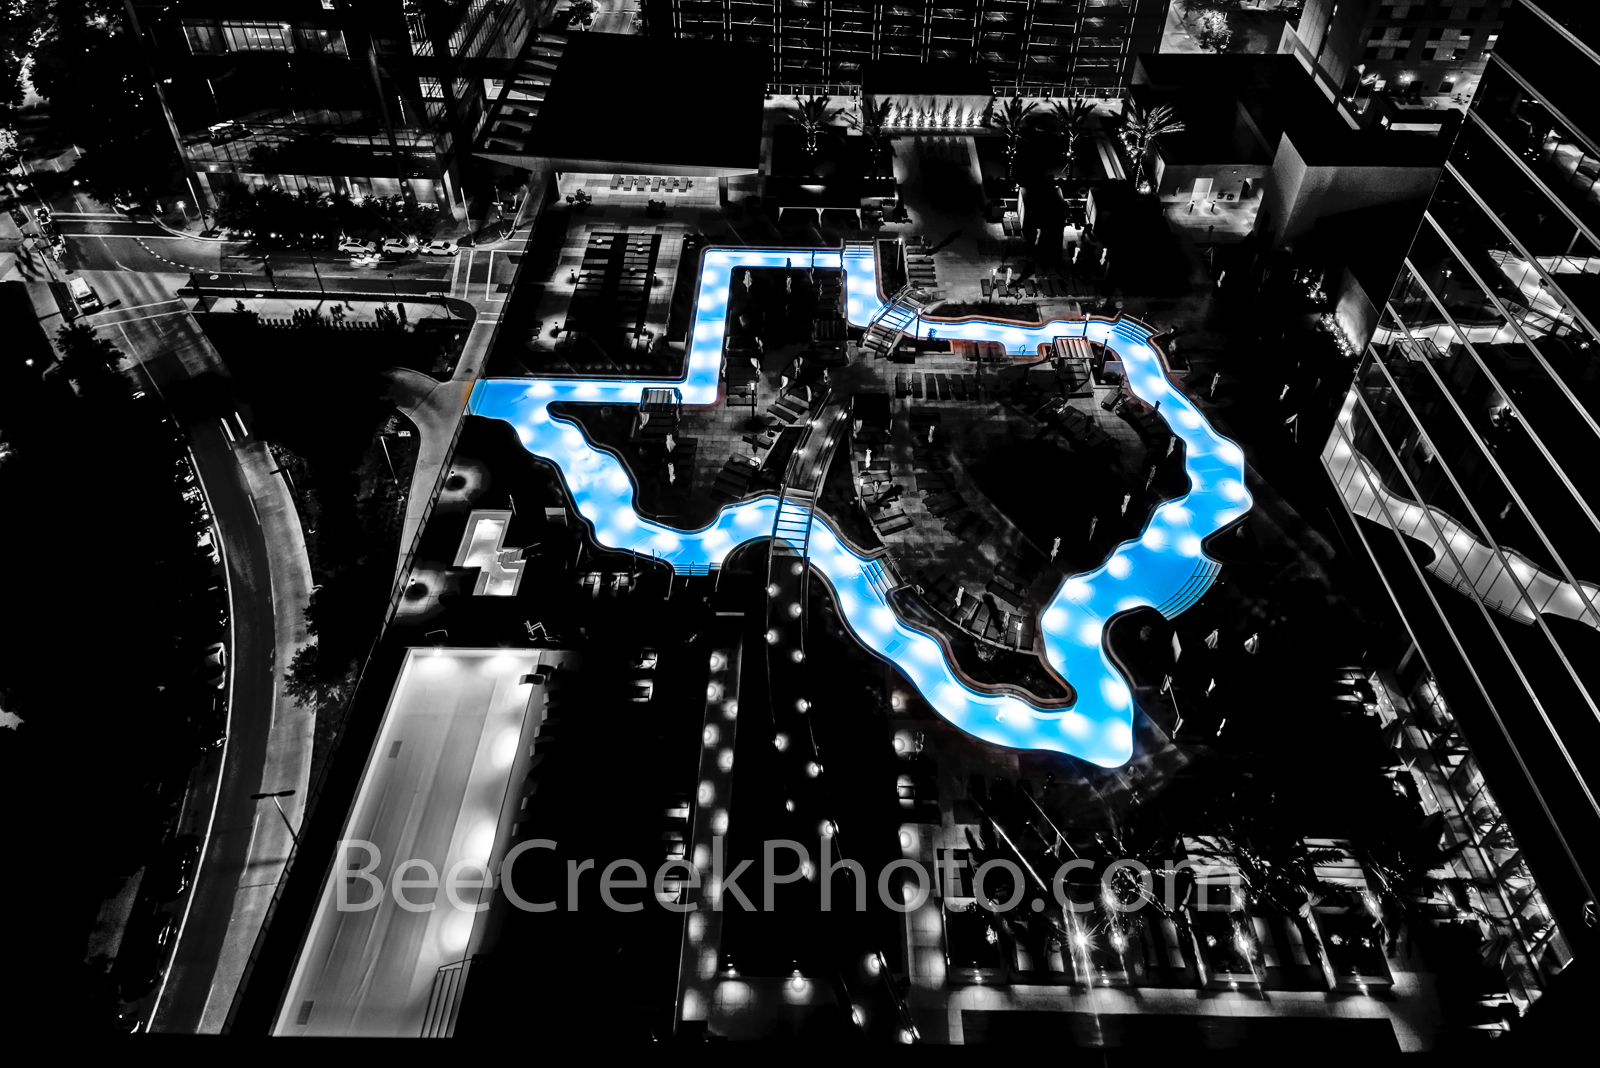 Texas shaped pool, photo